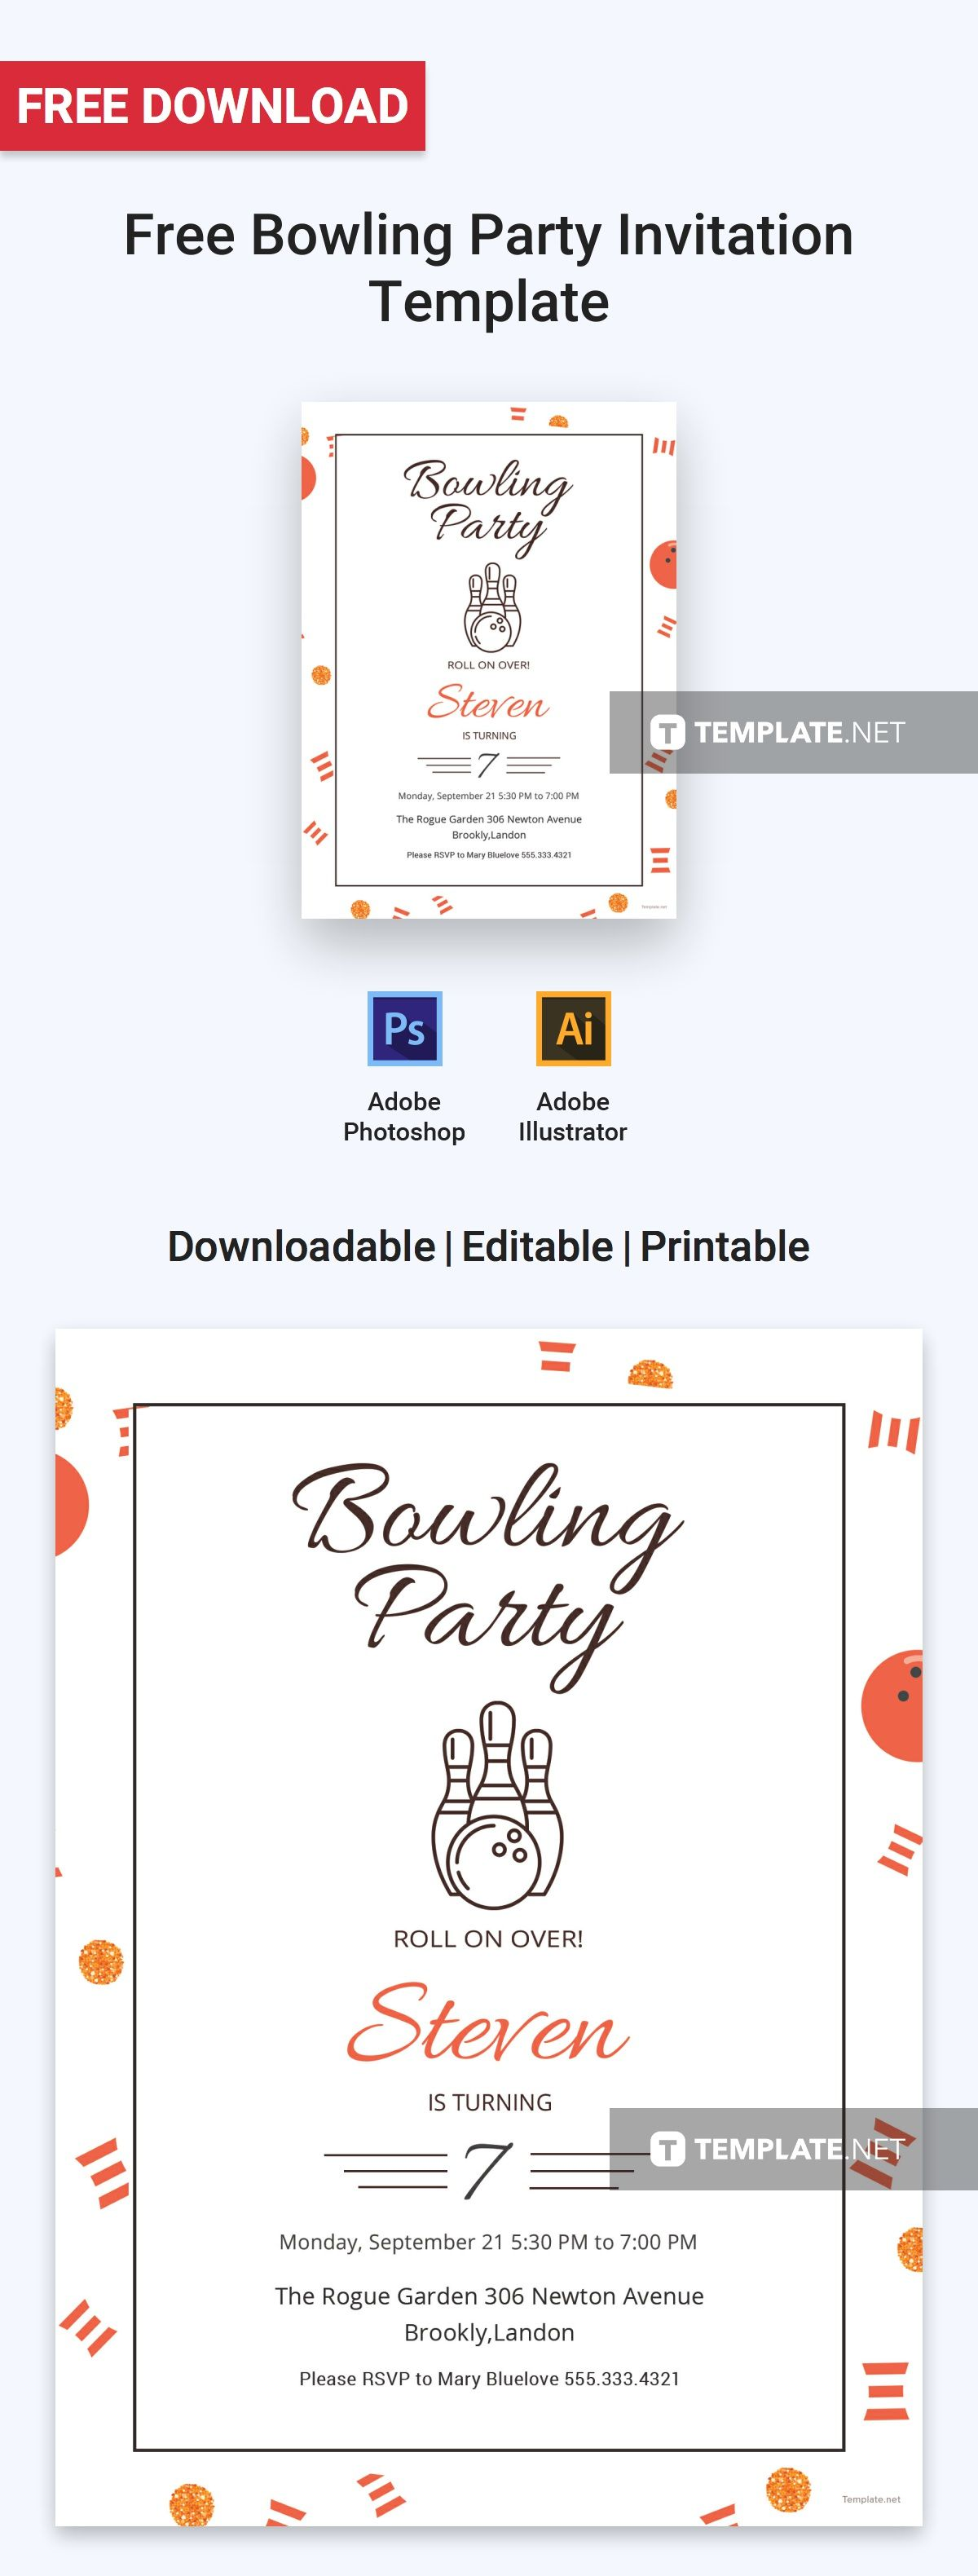 Free Bowling Party Invitation Template | Bowling party invitations, Party invite  template, Invitation template